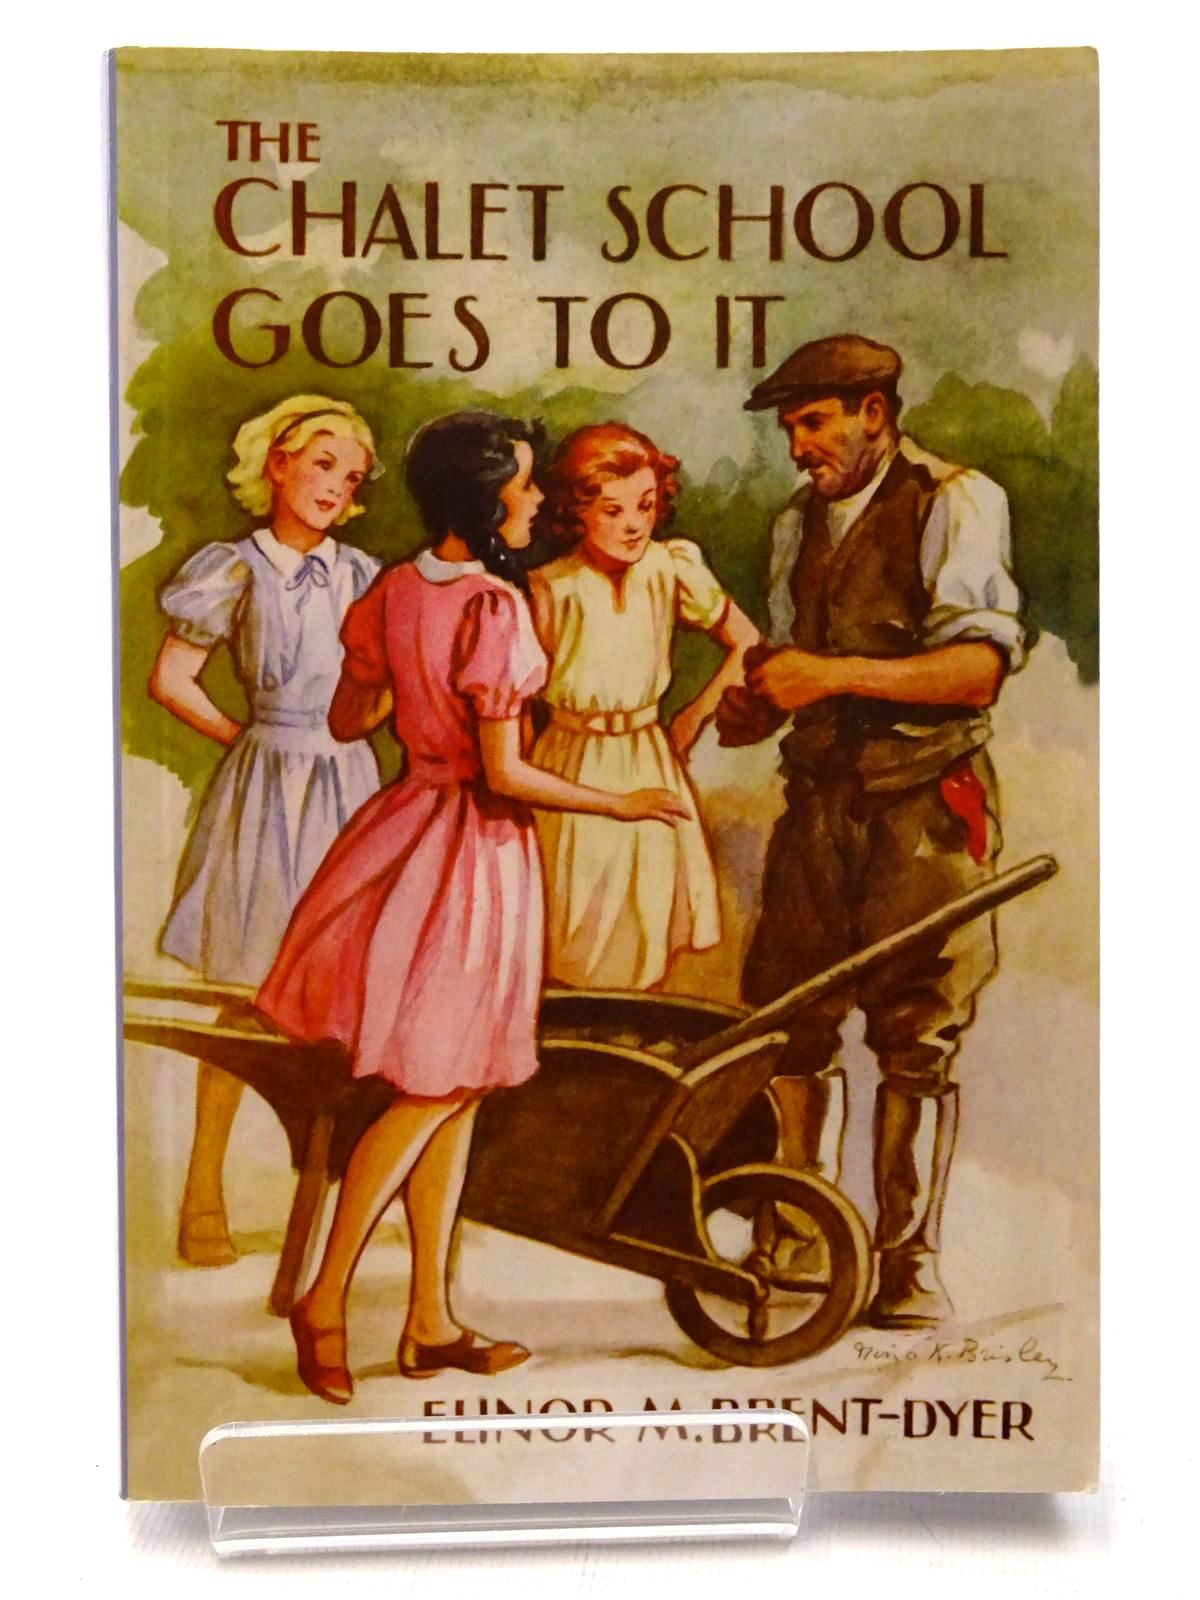 Photo of CHALET SCHOOL GOES TO IT written by Brent-Dyer, Elinor M. published by Girls Gone By (STOCK CODE: 1815762)  for sale by Stella & Rose's Books